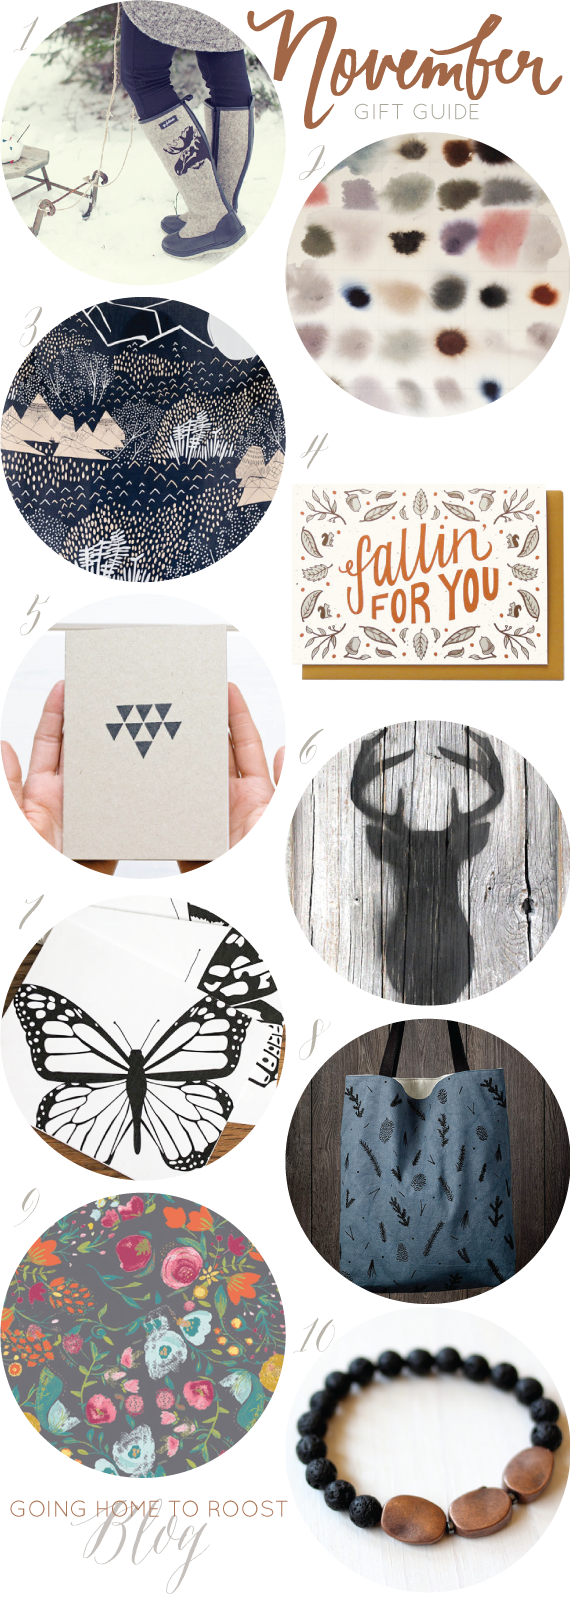 november's gift guide | going home to roost